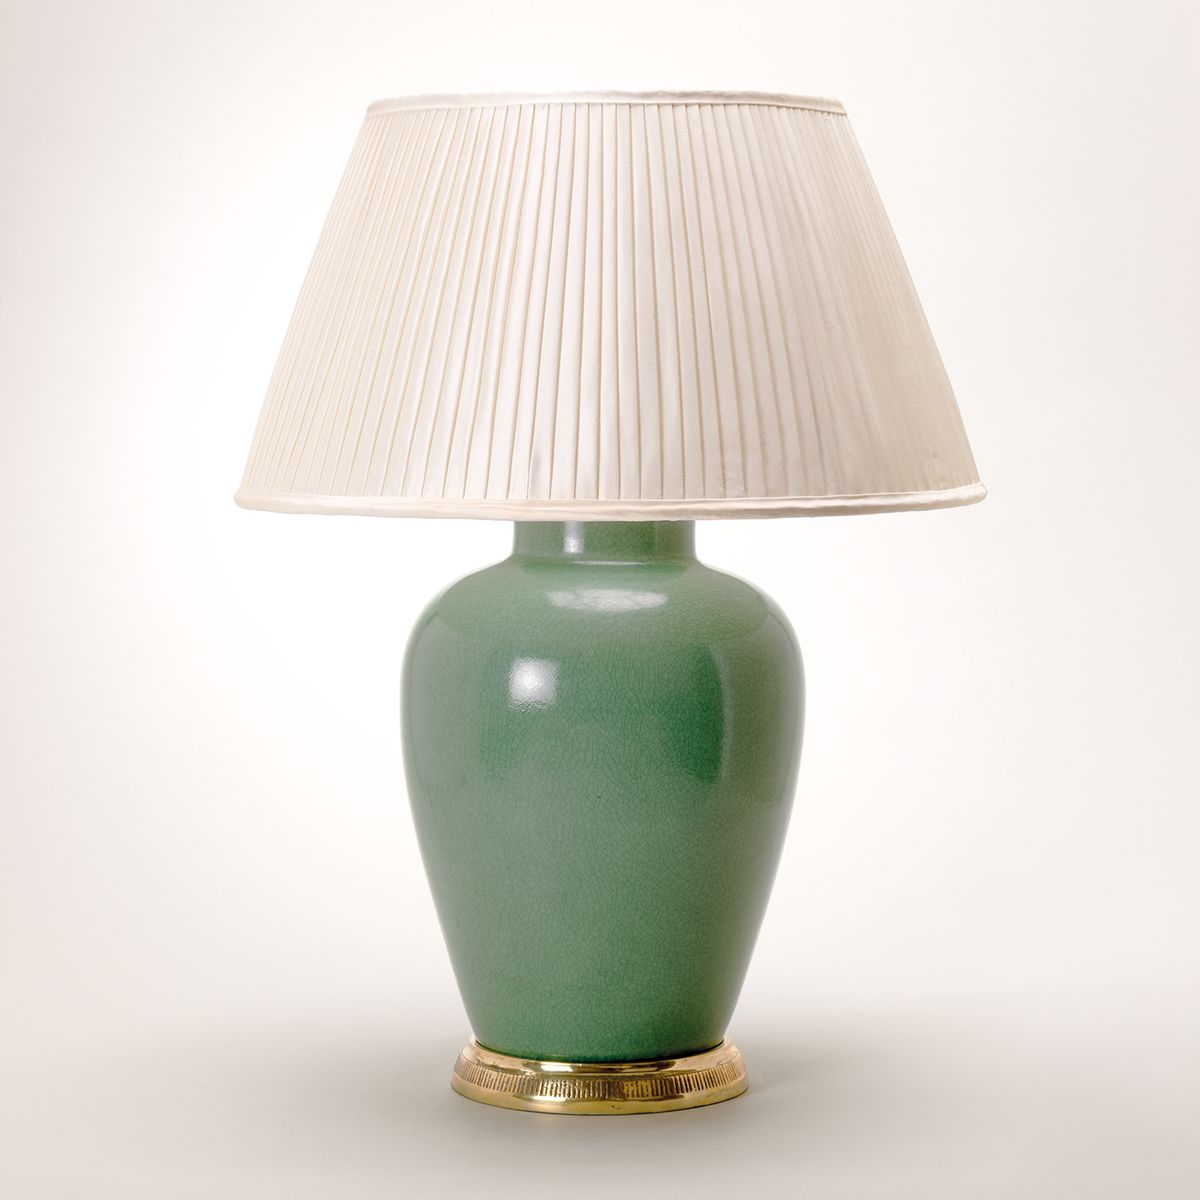 Melon Vase Table Lamp - Crackled Celadon | Nicholas Engert Interiors